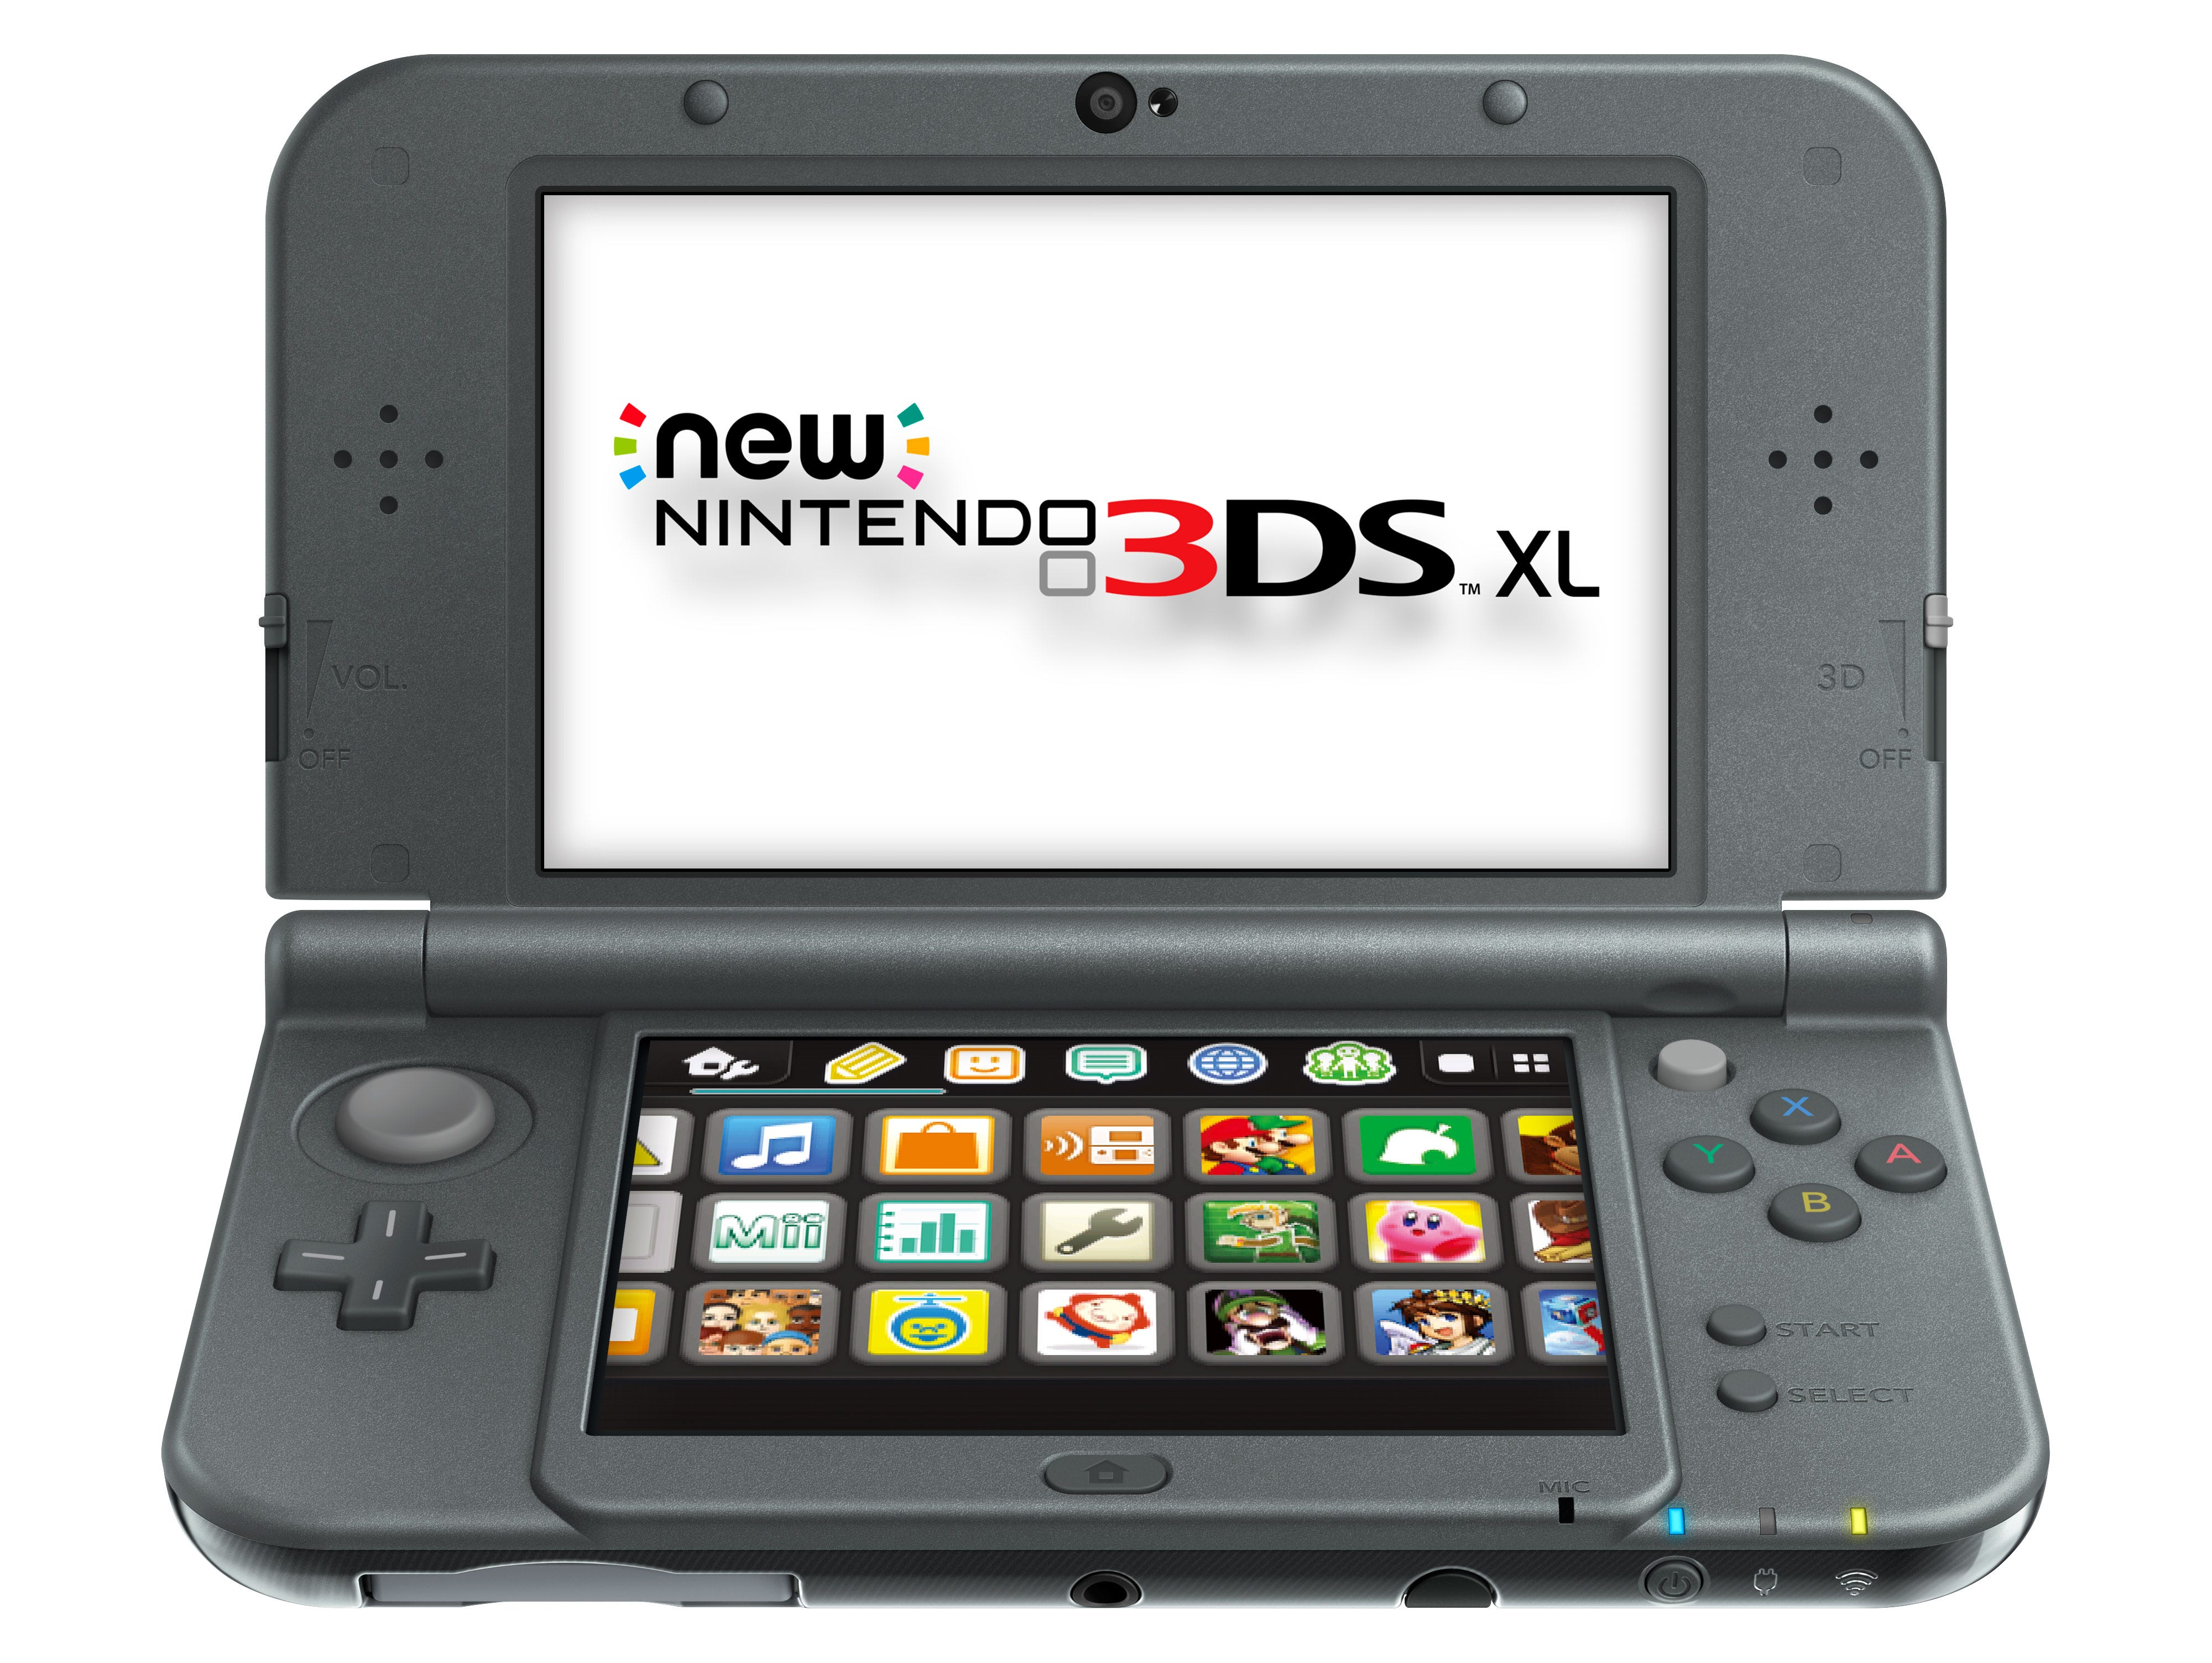 The New Nintendo 3DS XL.